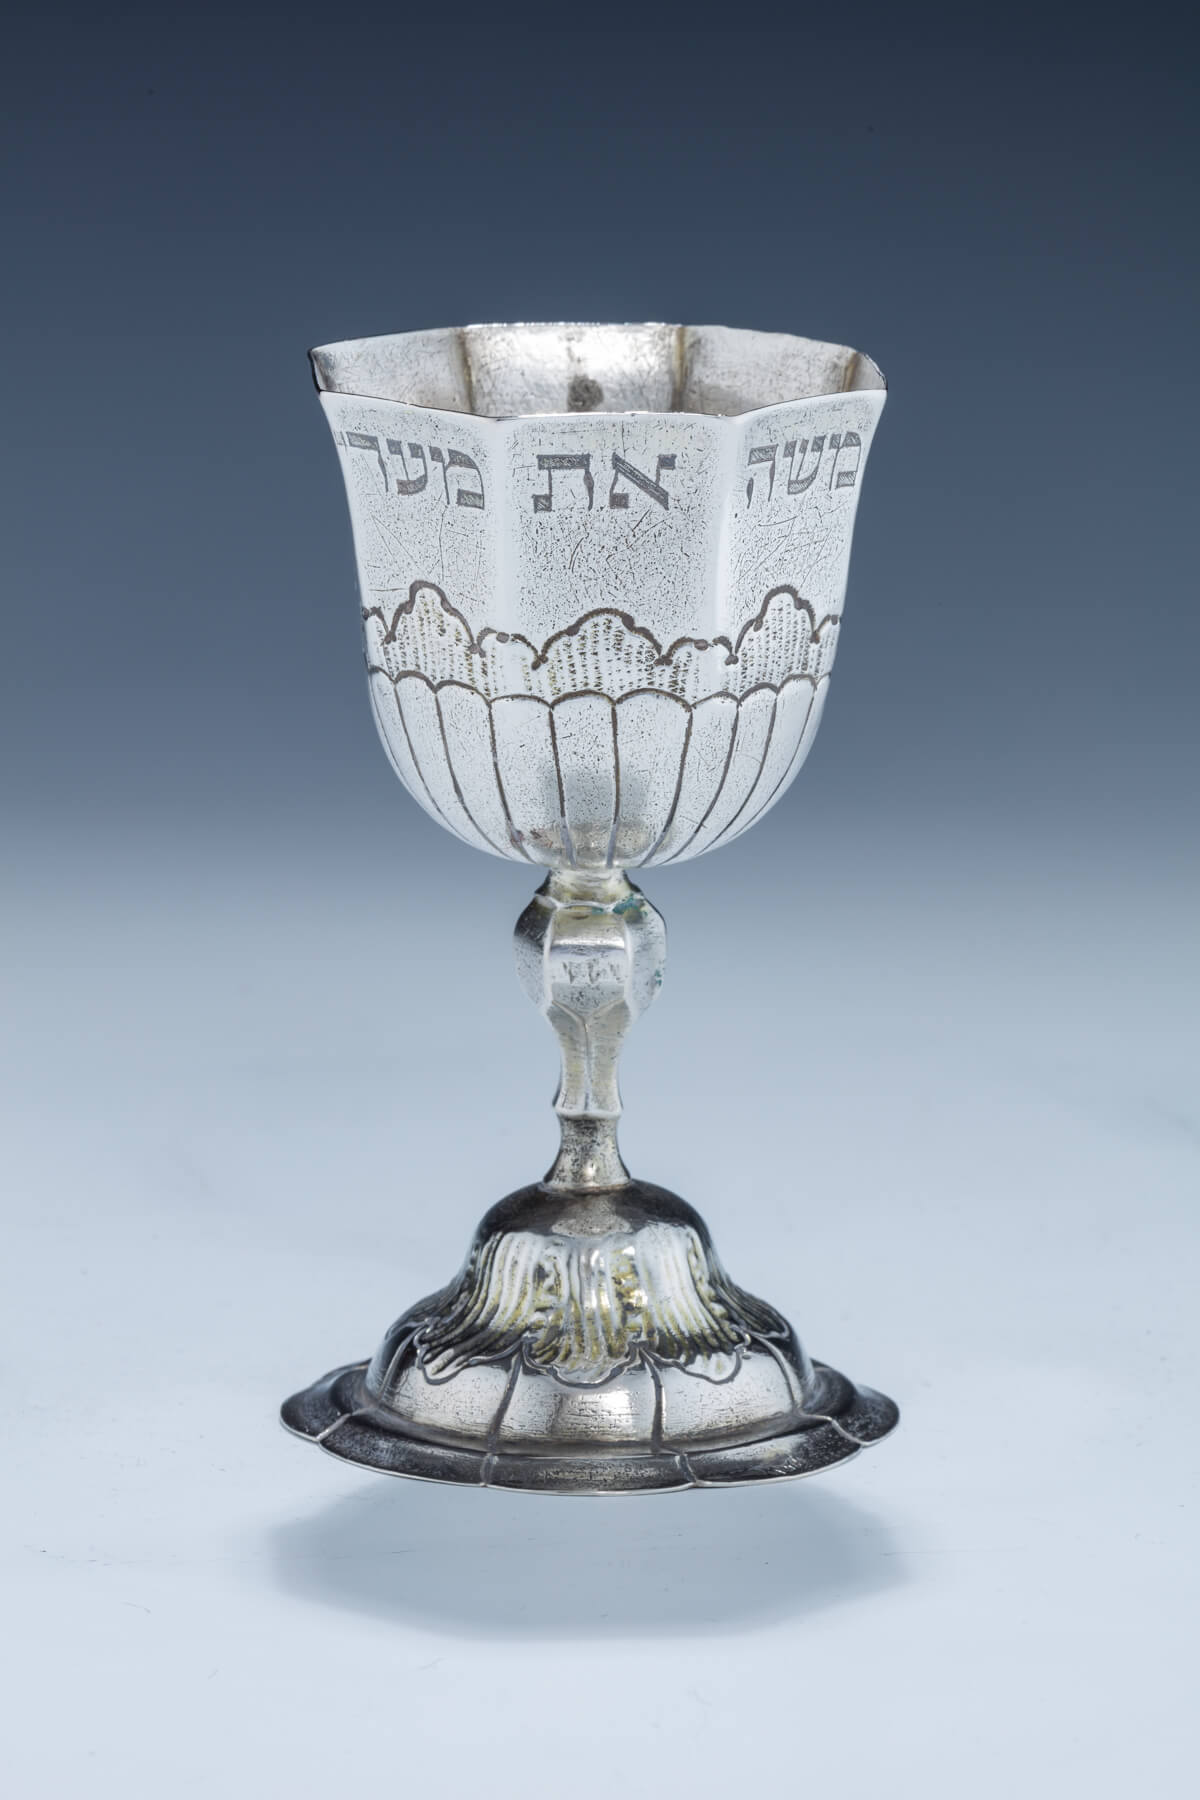 98. A Silver Holiday Goblet